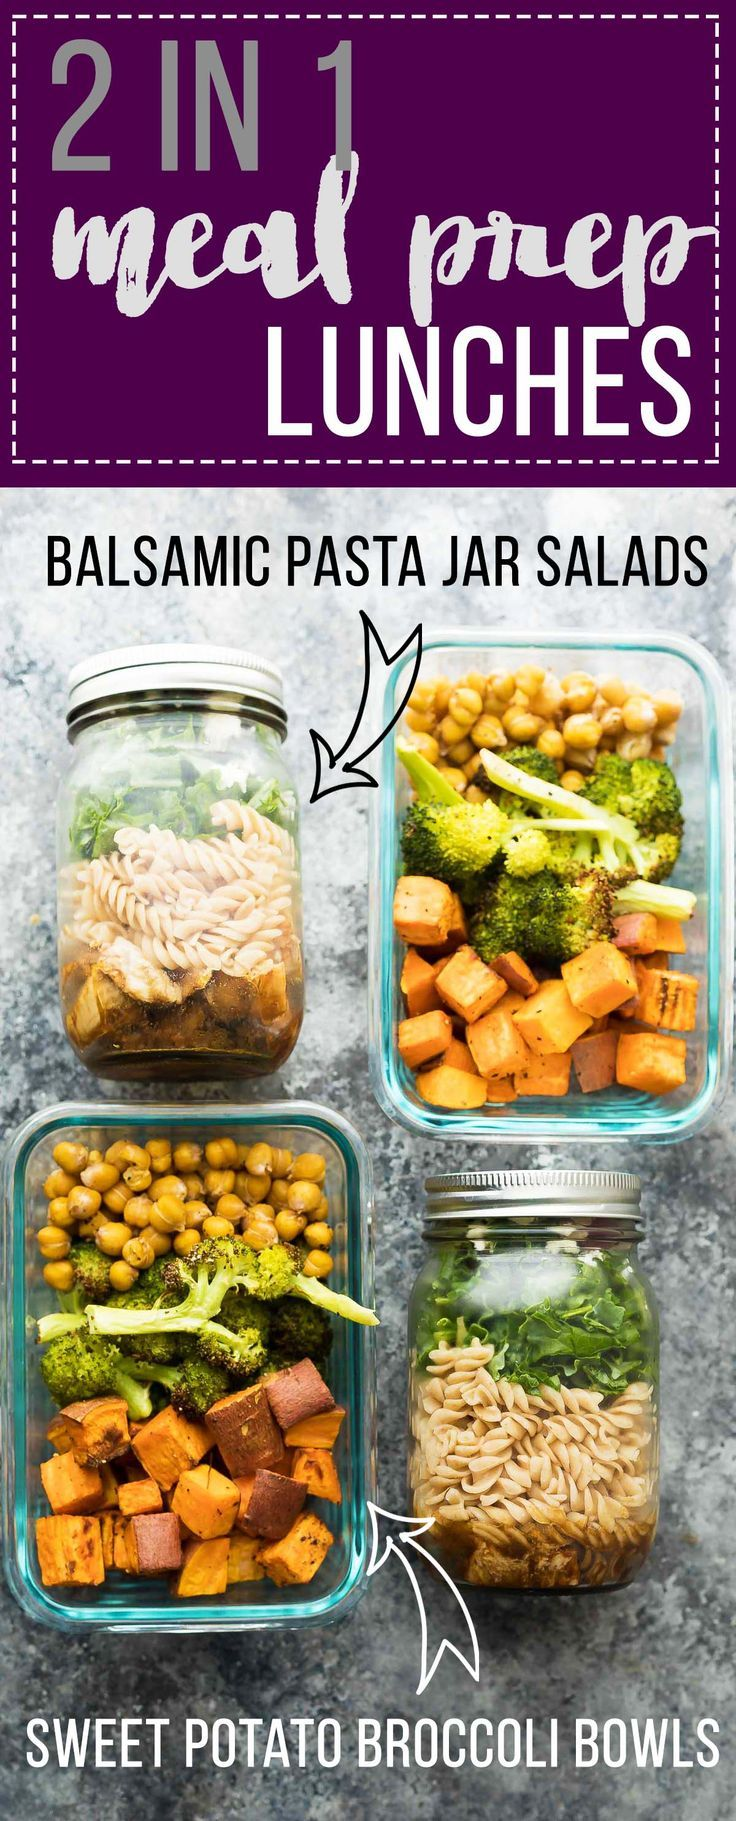 Prep these balsamic pasta jar salads and sweet potato, chickpea, broccoli bowls at the same time and you will have two different lunches to enjoy through the week!  Both recipes are ready in under 45 minutes.